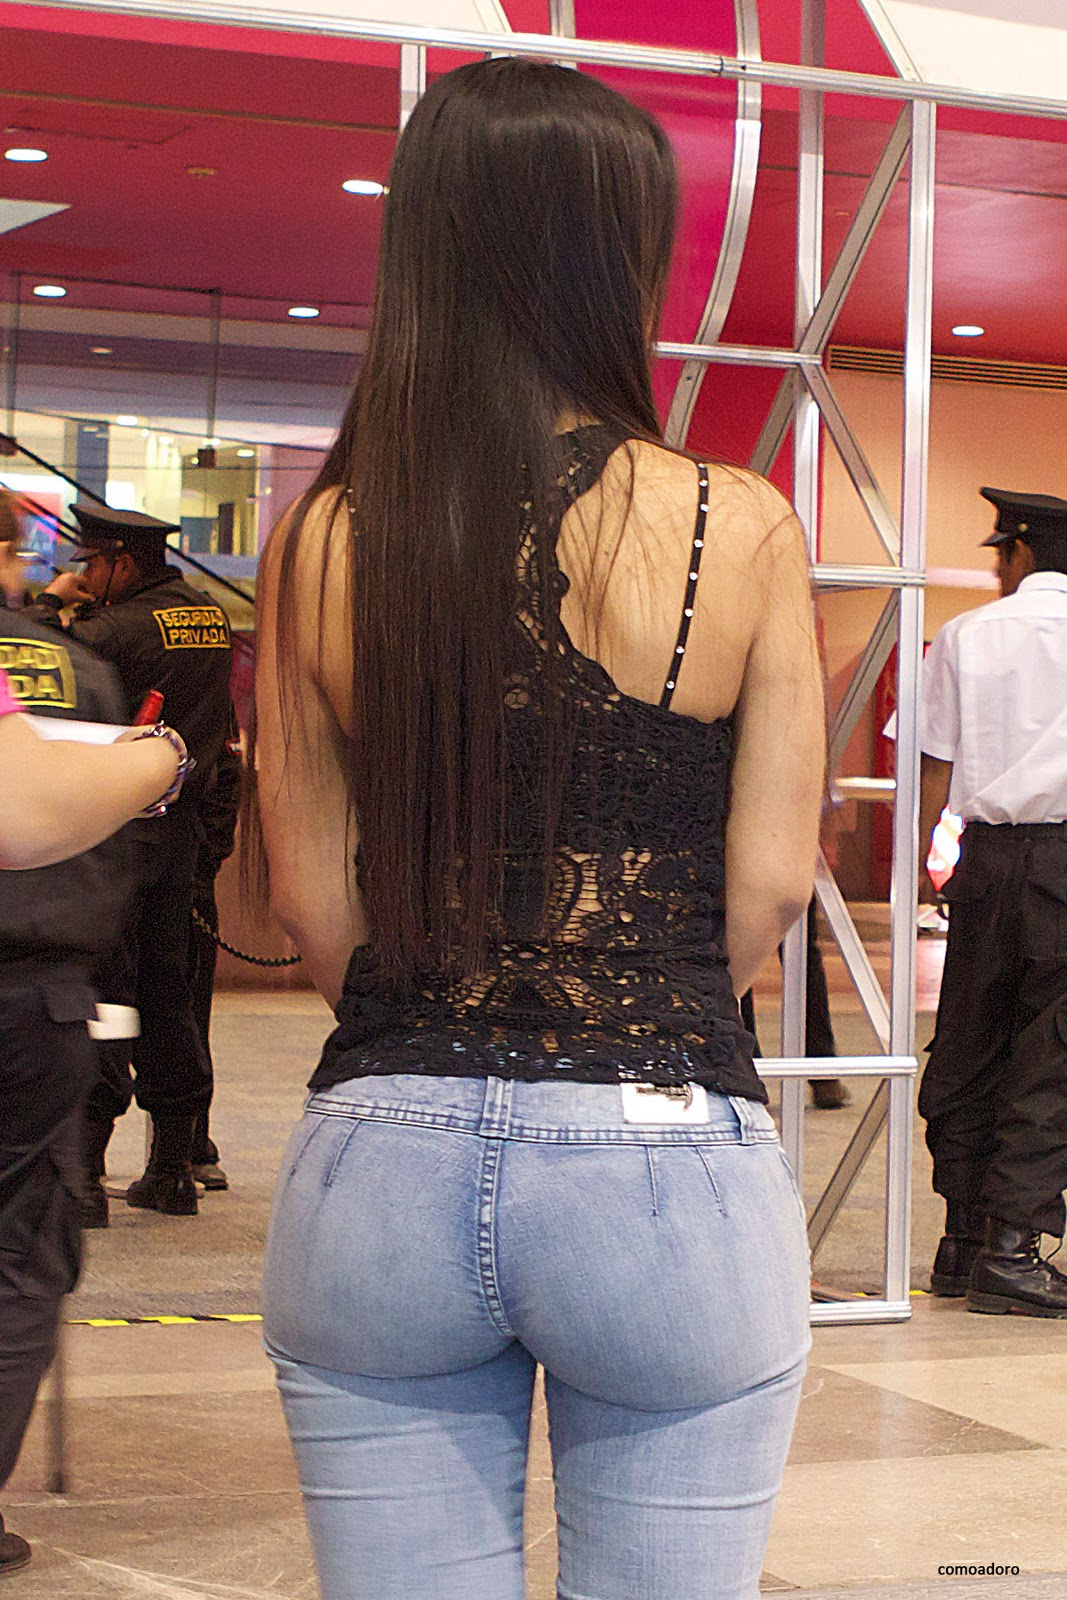 Cute Girl Whit Perfect Butt Jeans Candid  Divine Butts -5423